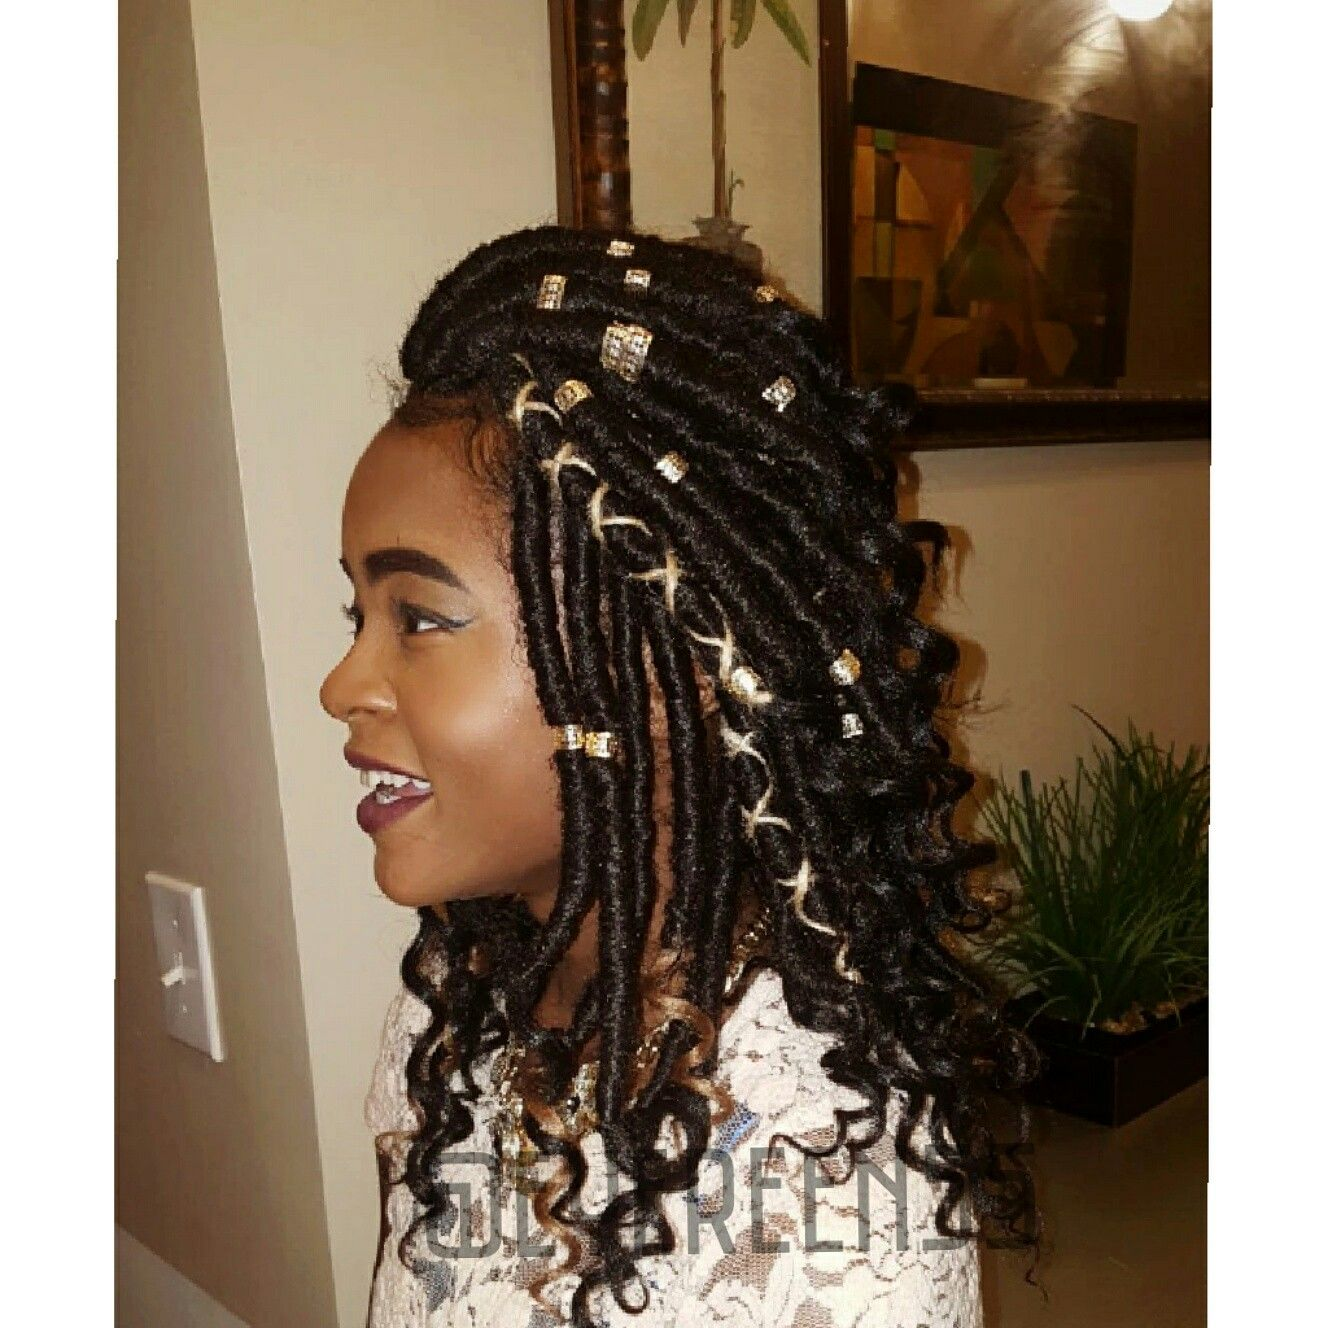 If You Are Looking To Add A Personal Touch Your Box Braids Try Adding Accessories Such As Rings Beads Or Even Colorful Yarn Keep Reading Lean How